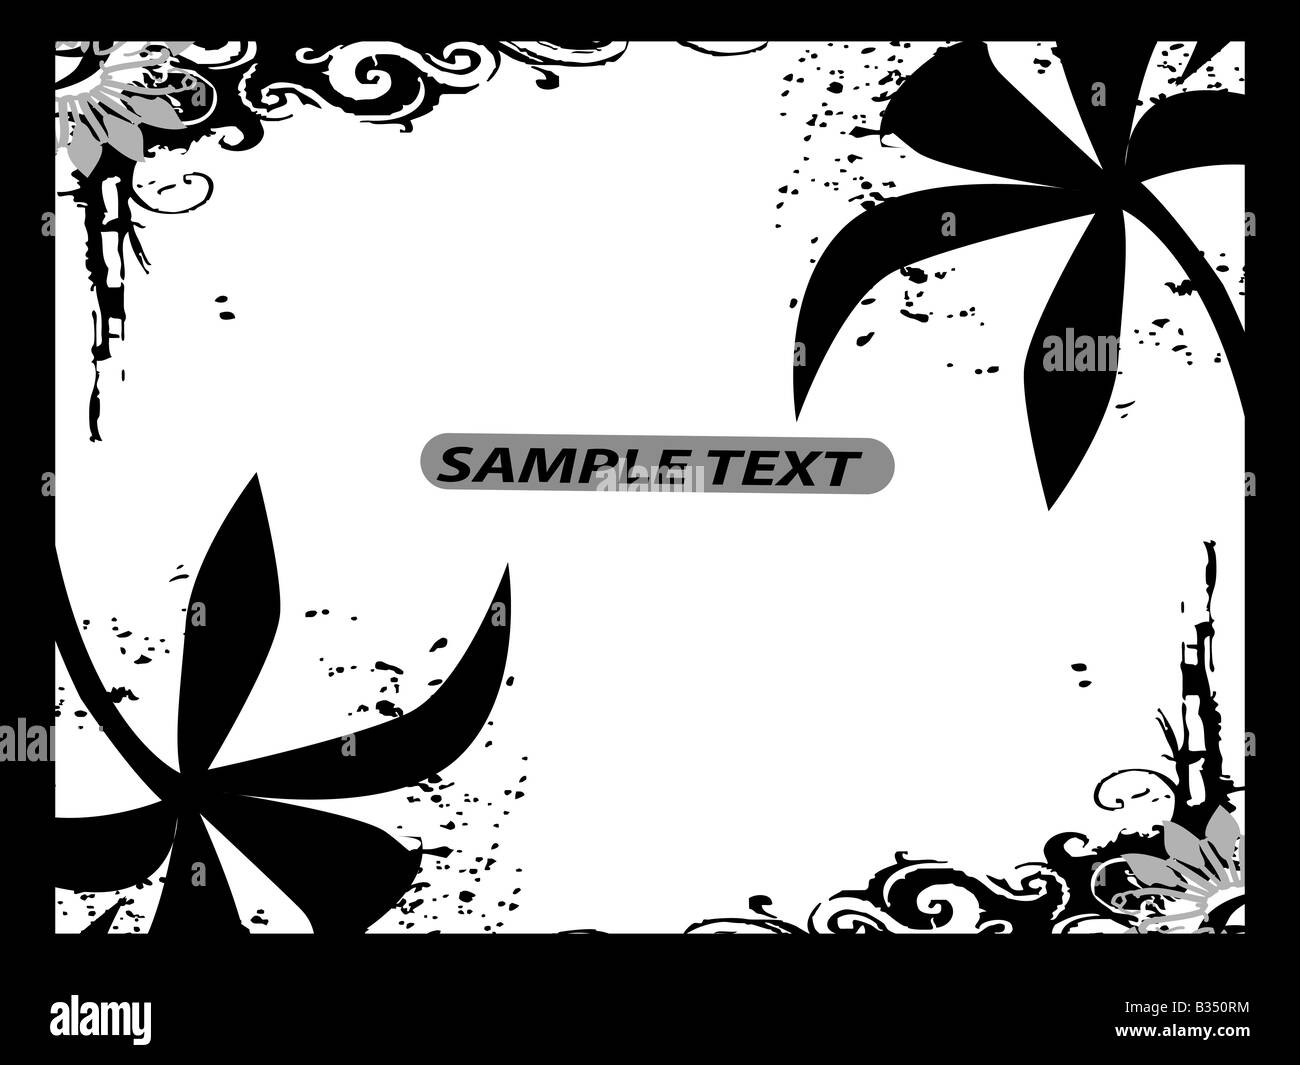 floral border with swirls and text template stock photo 19164760